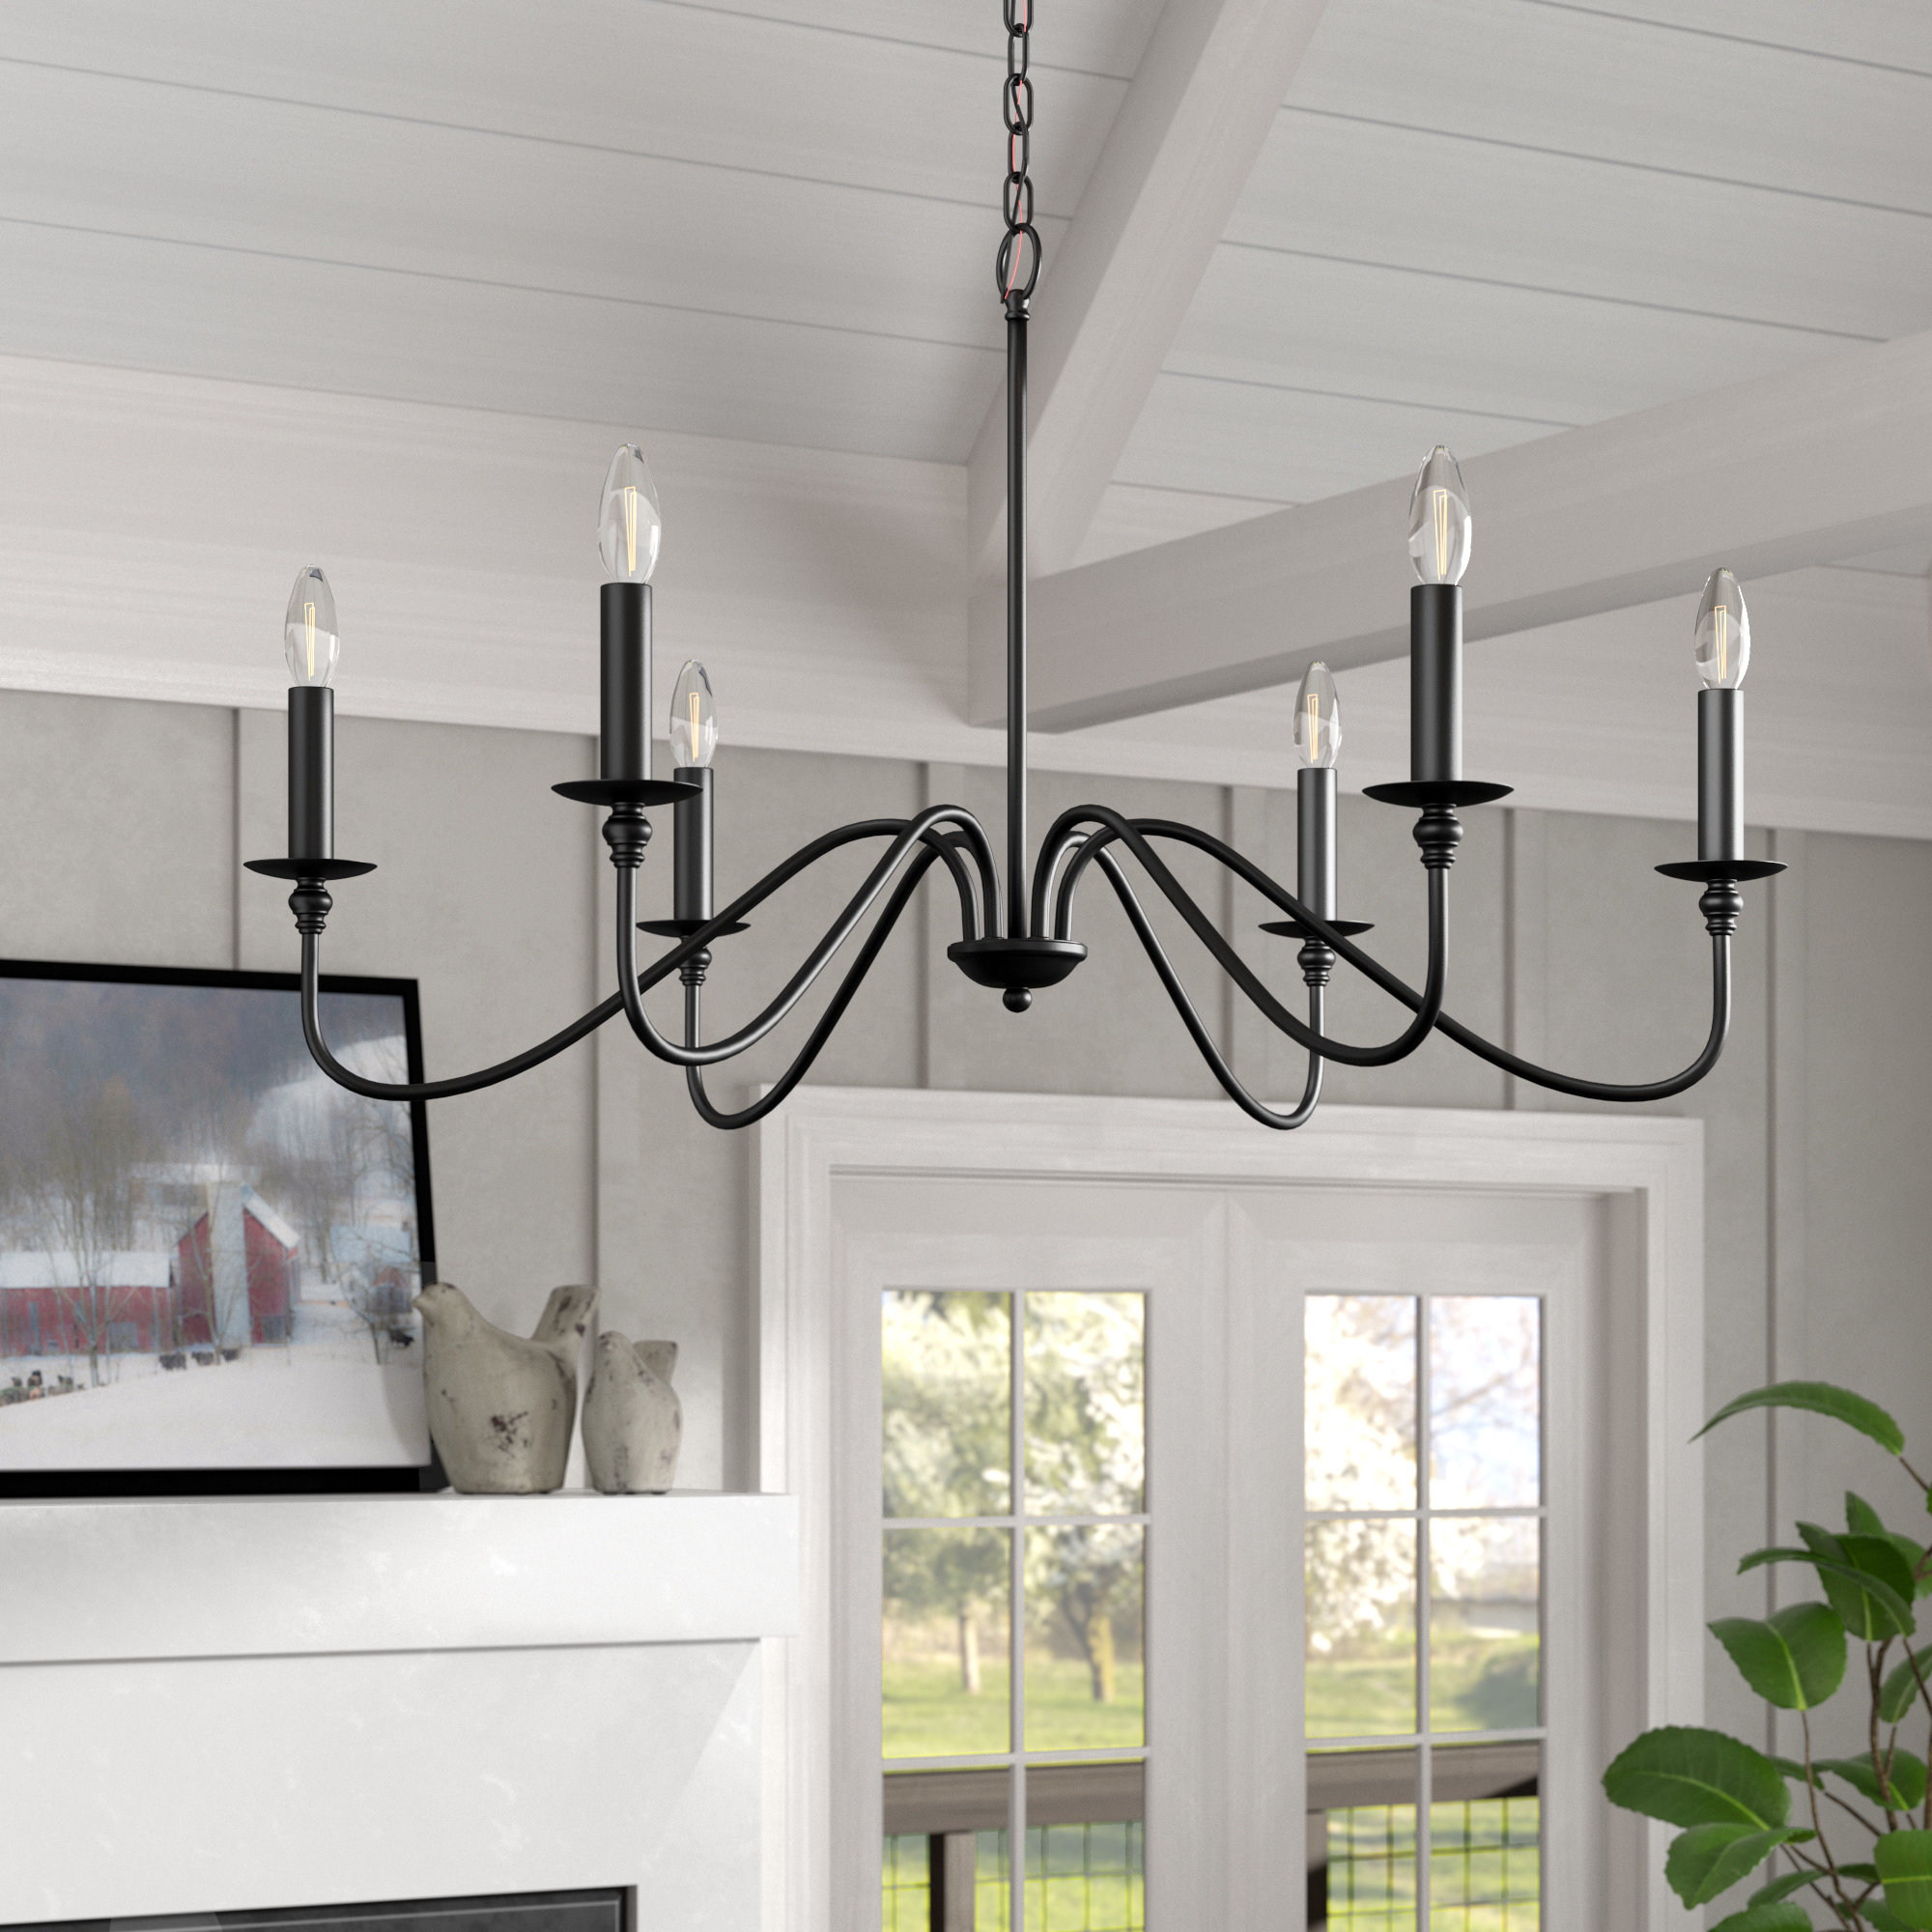 Hamza 6 Light Candle Style Chandelier Within 2019 Shaylee 8 Light Candle Style Chandeliers (View 12 of 25)